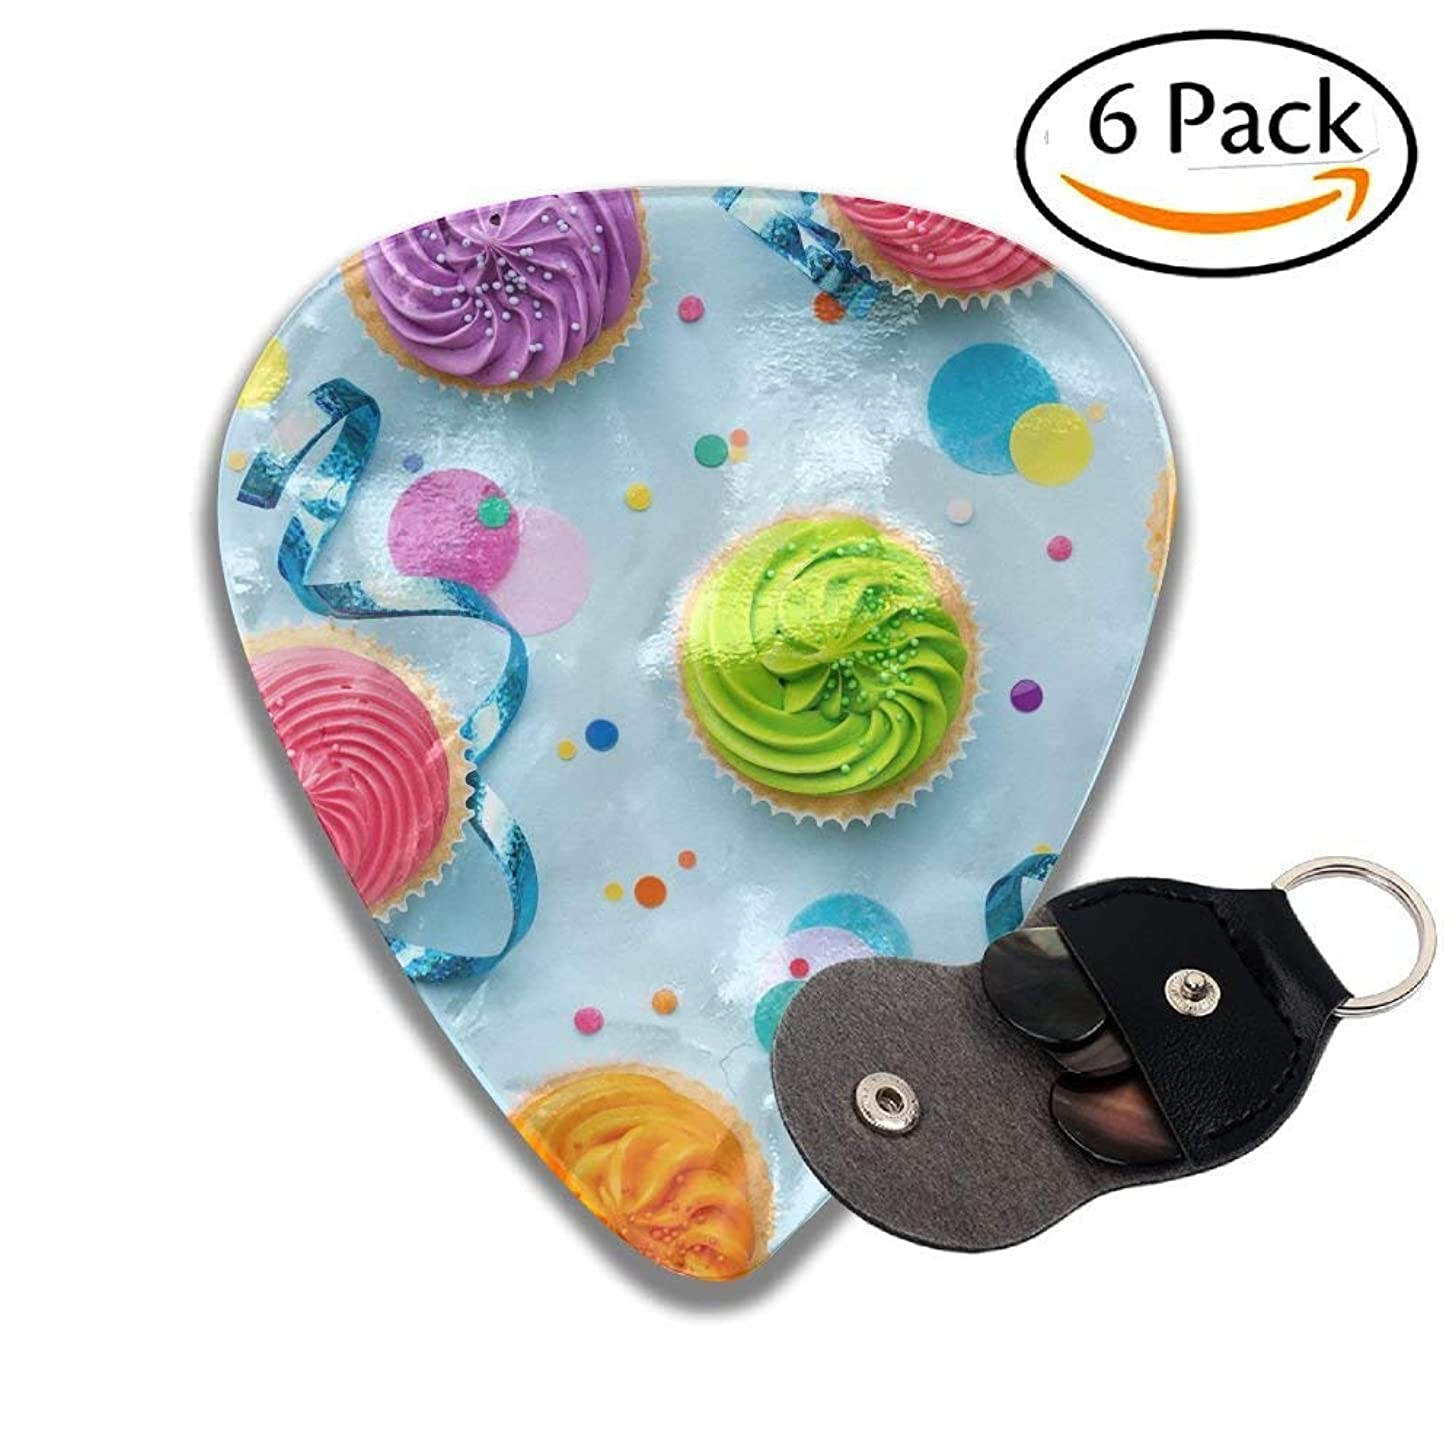 Colorful Cupcake Party Background On Blue Stylish Celluloid Guitar Picks Plectrums For Guitar Bass .46mm 6 Pack